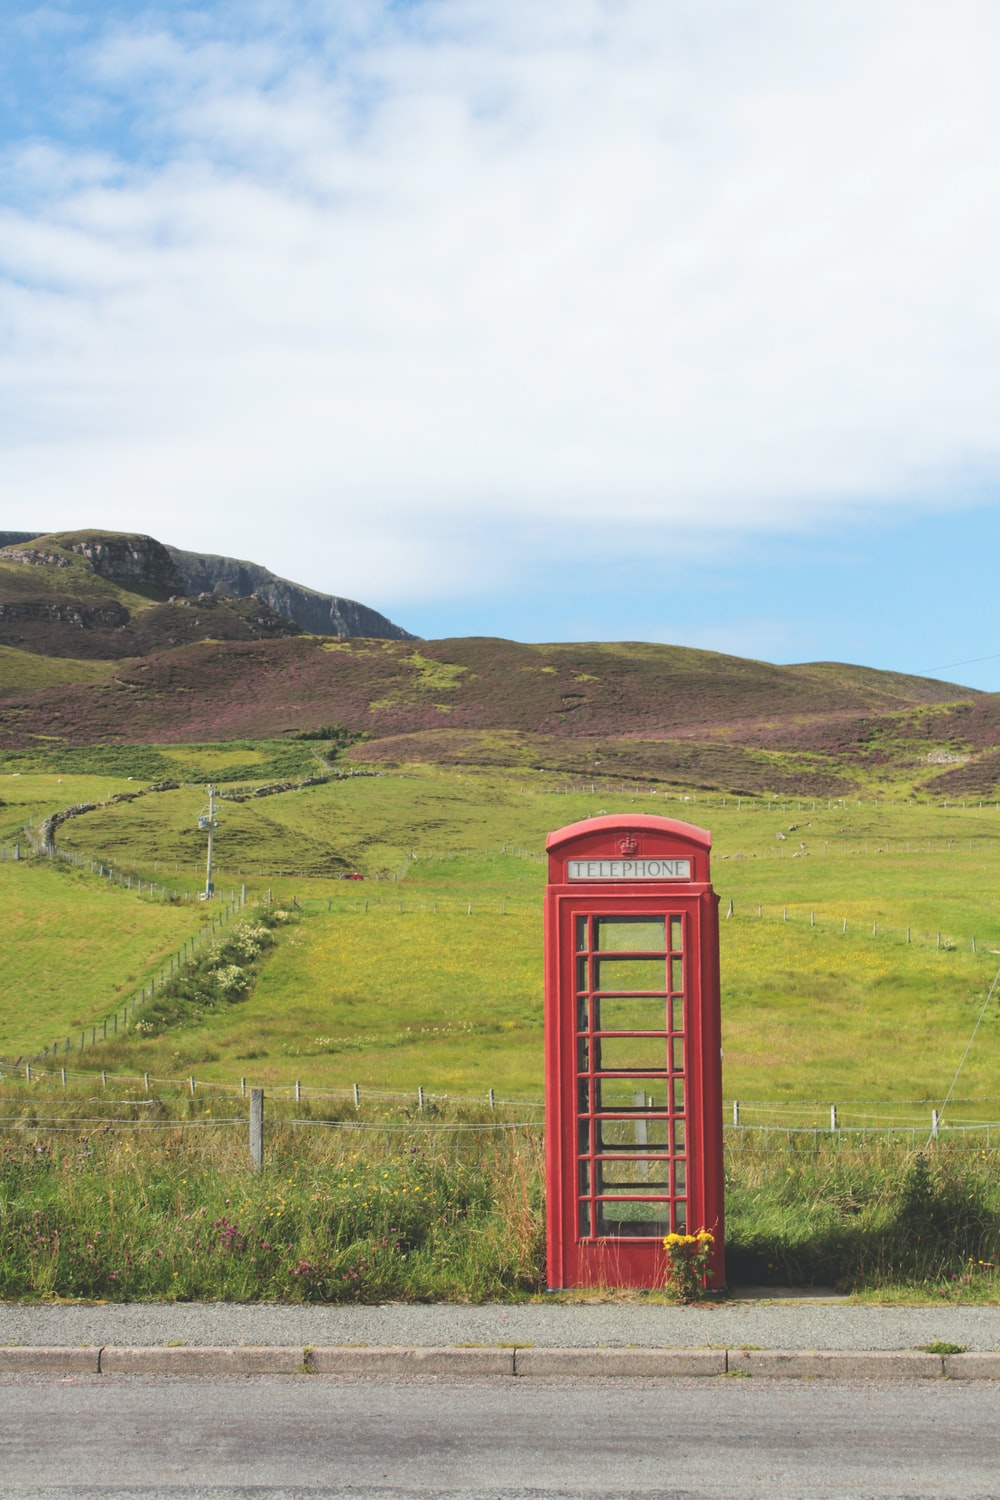 red telephone booth on green grass field during daytime